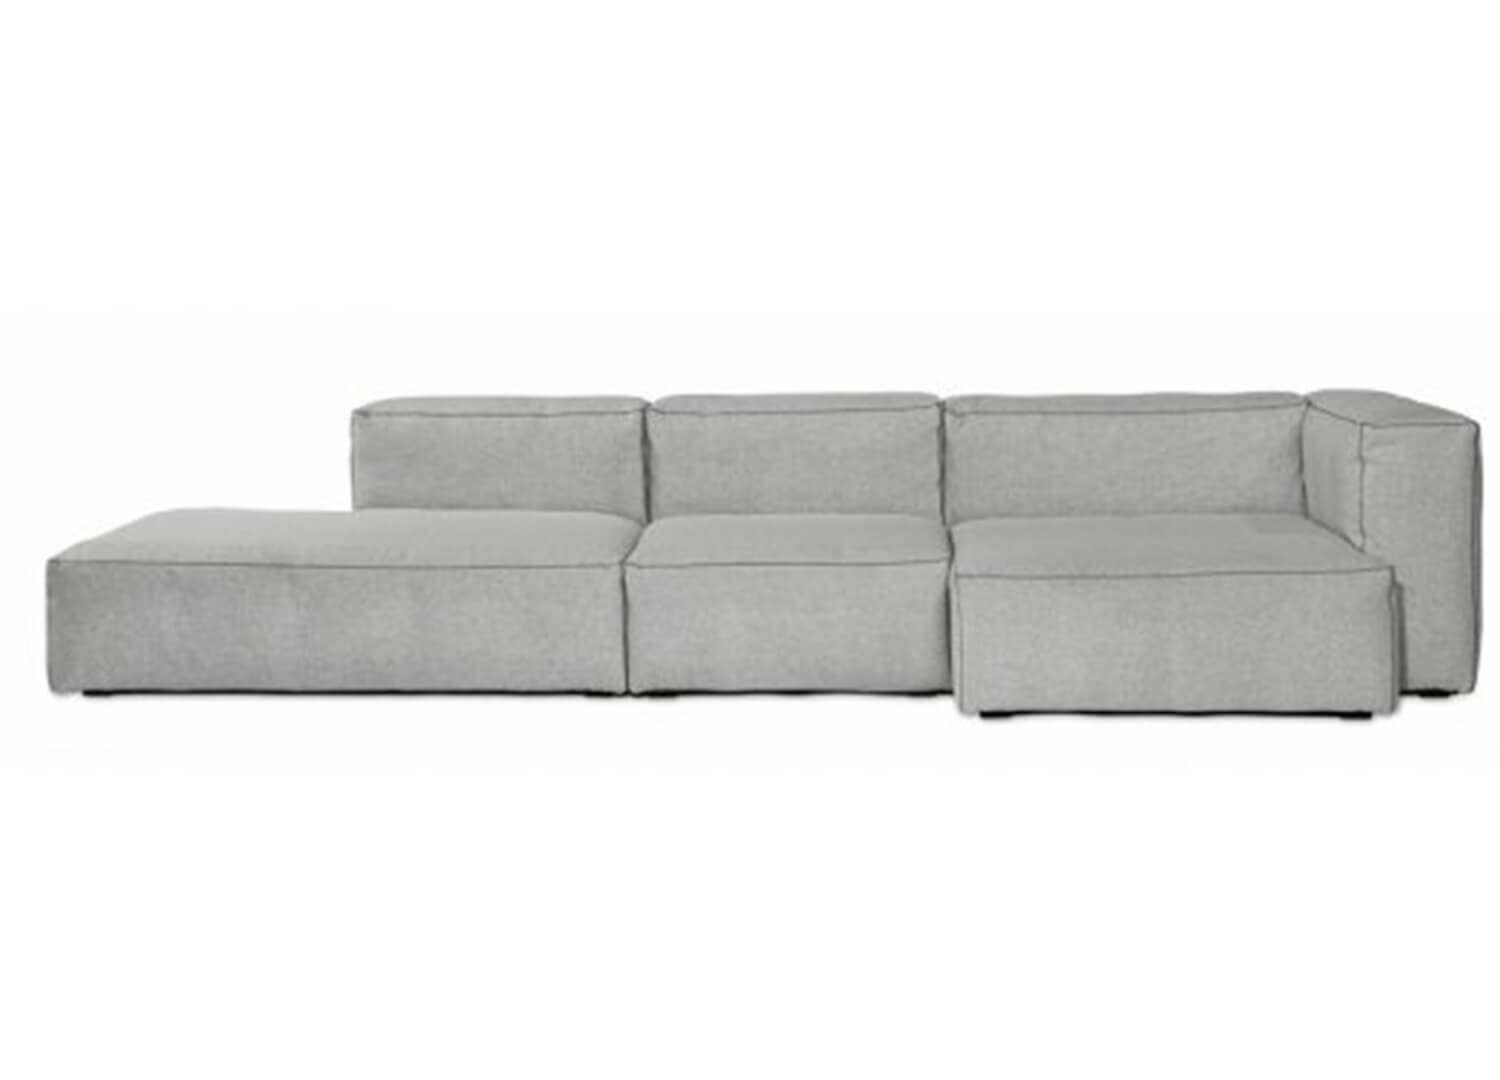 Kids Sofa Australia Mags Soft Sofa By Hay For Cult Est Living Design Directory